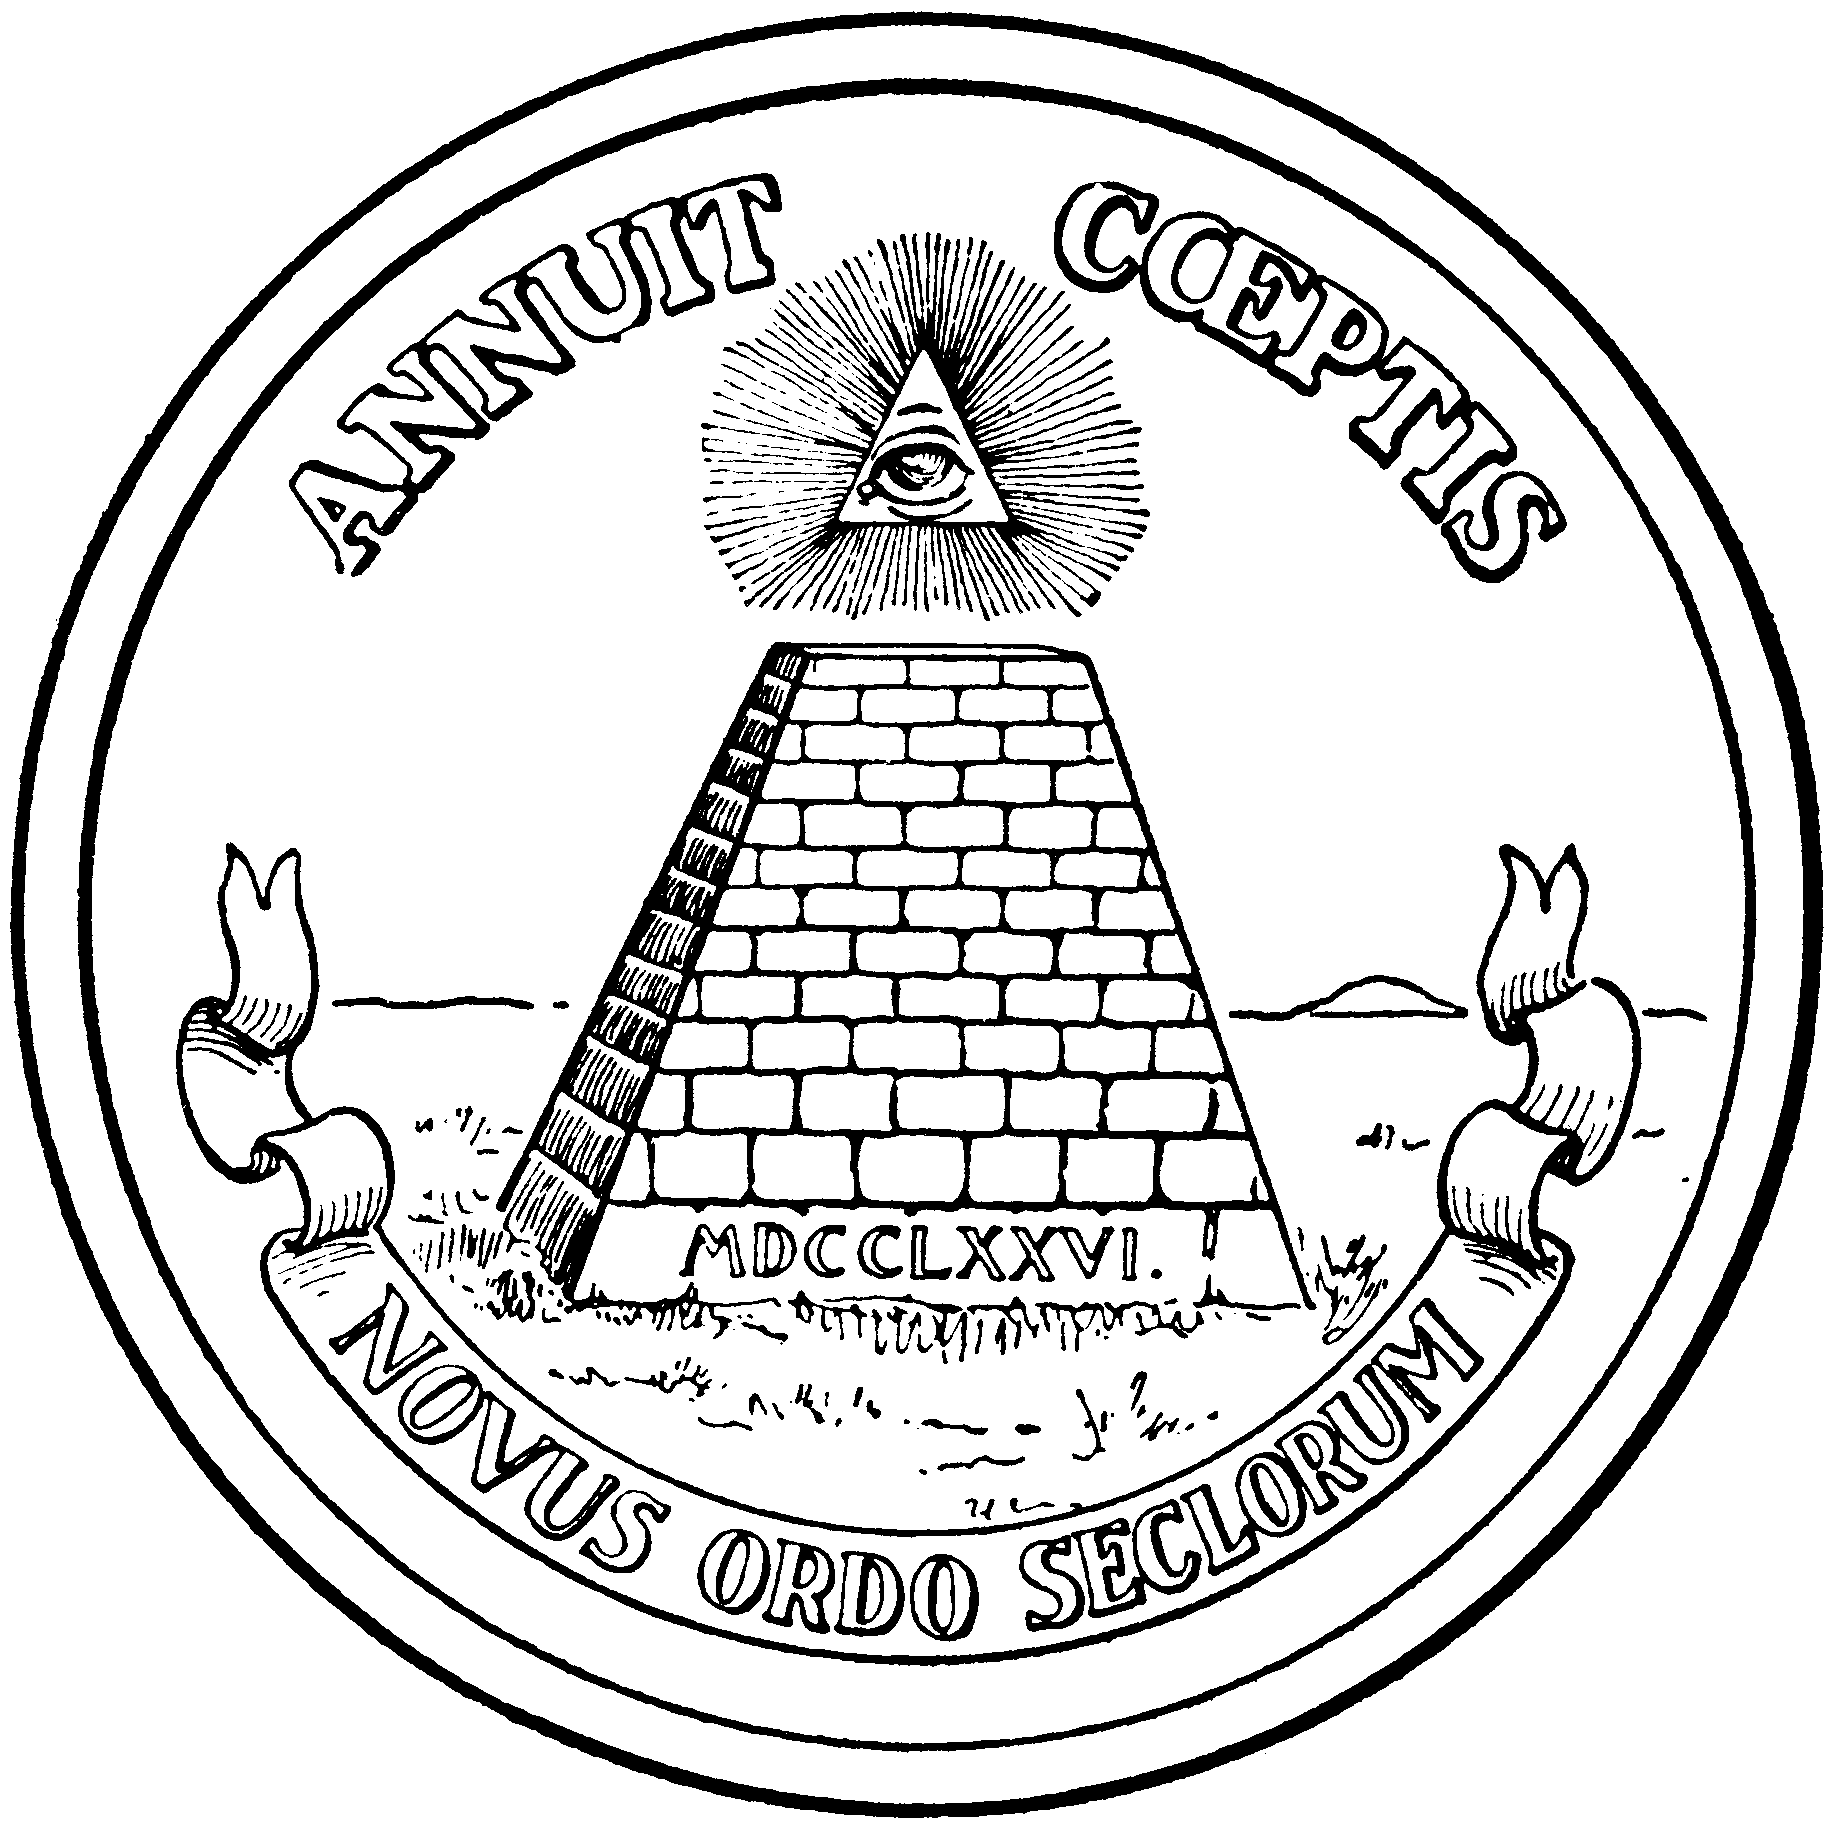 1833x1828 Filesecond Great Seal Of The Us Bah P257.png